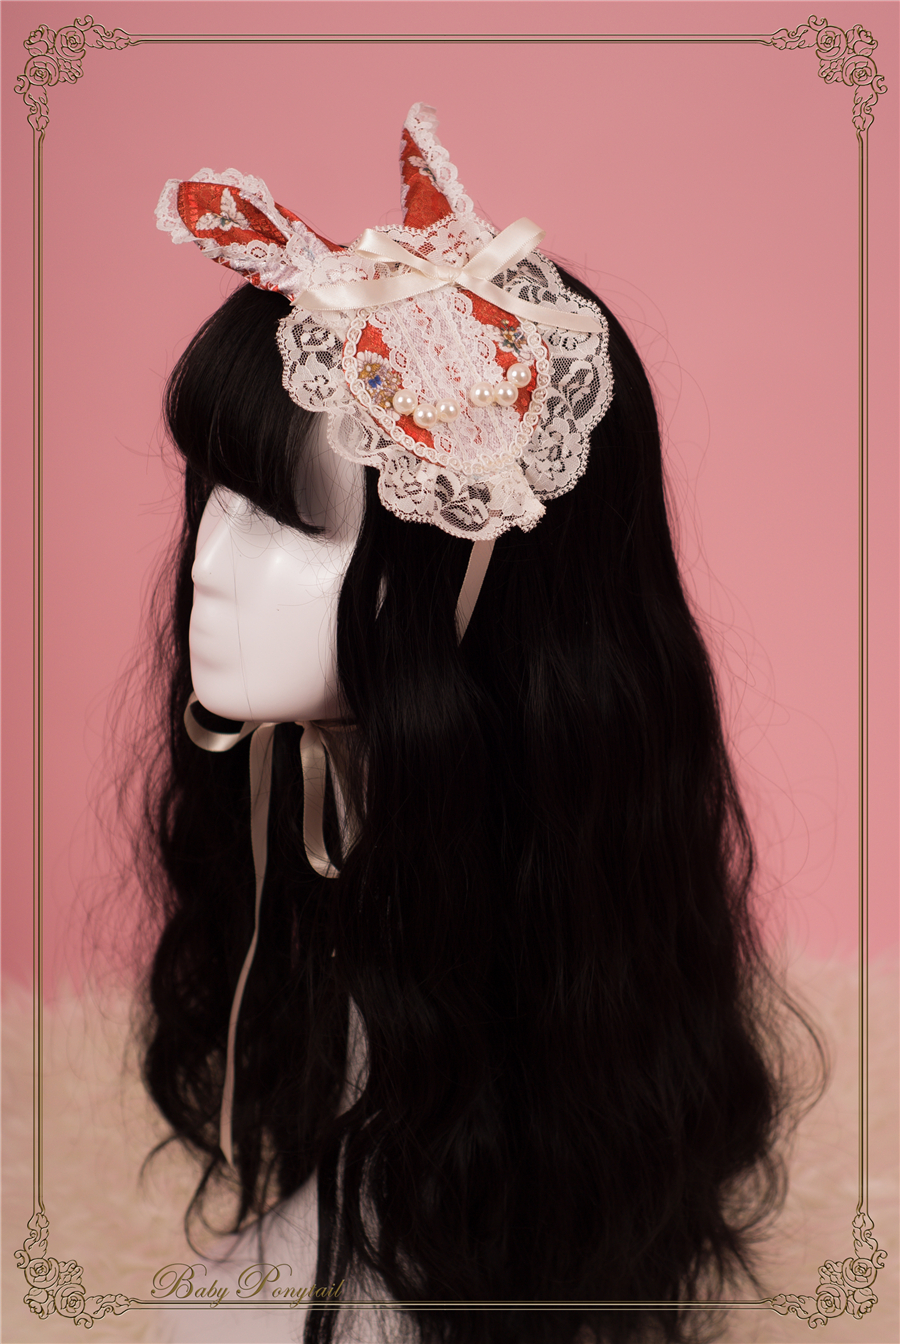 BabyPonytail_Stock Photo_My Favorite Companion_Bunny Head Dress_12.jpg